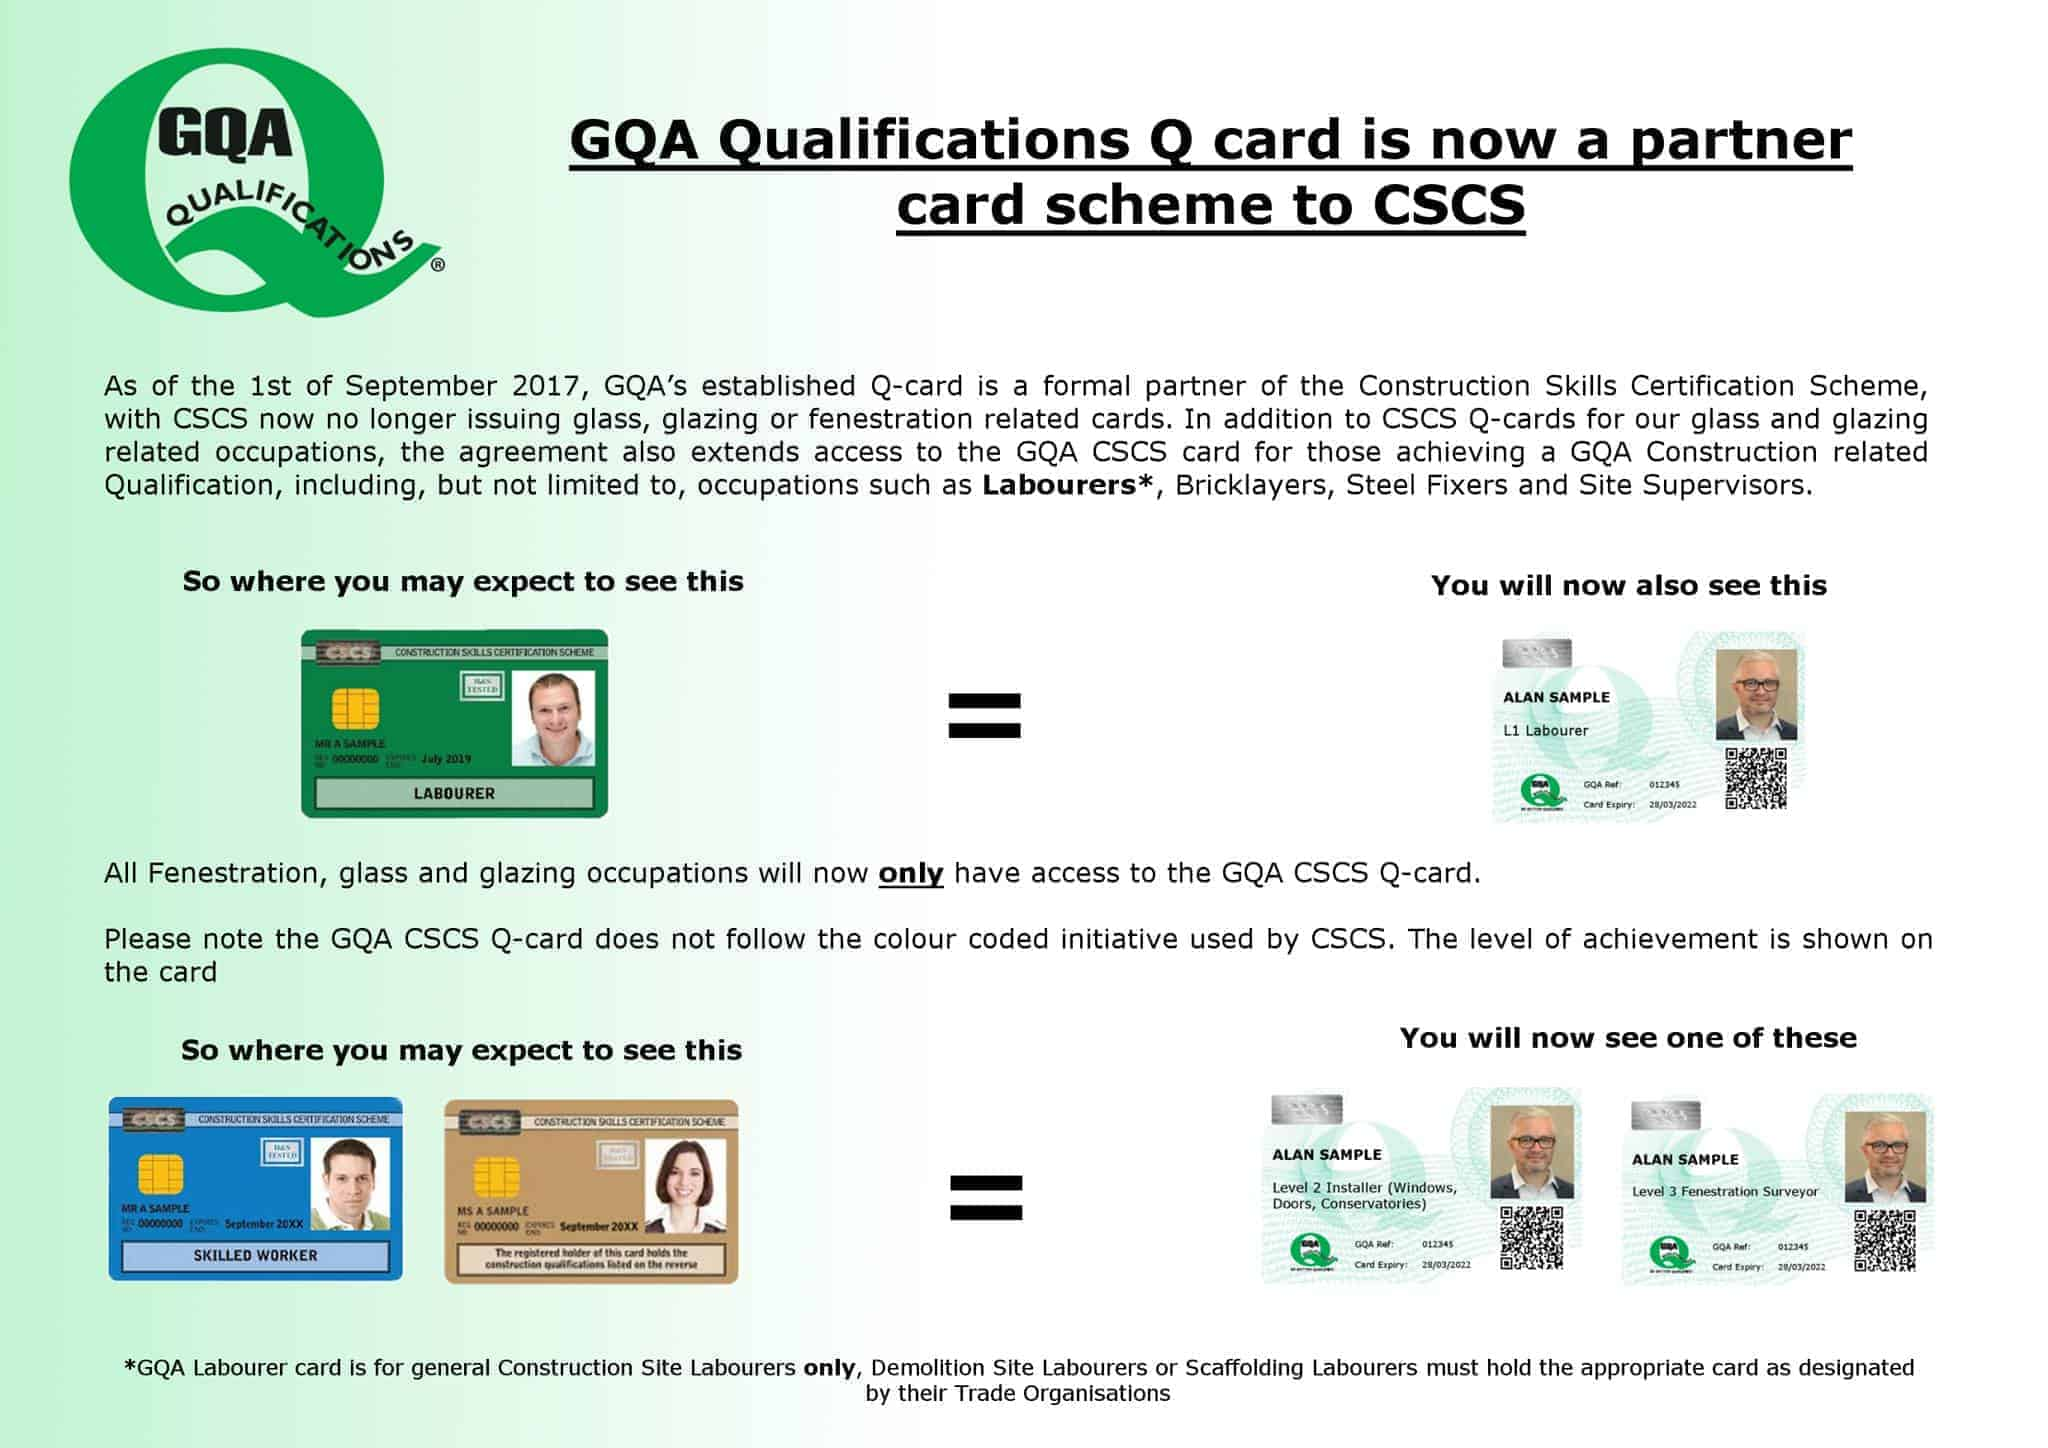 gqa gualifications